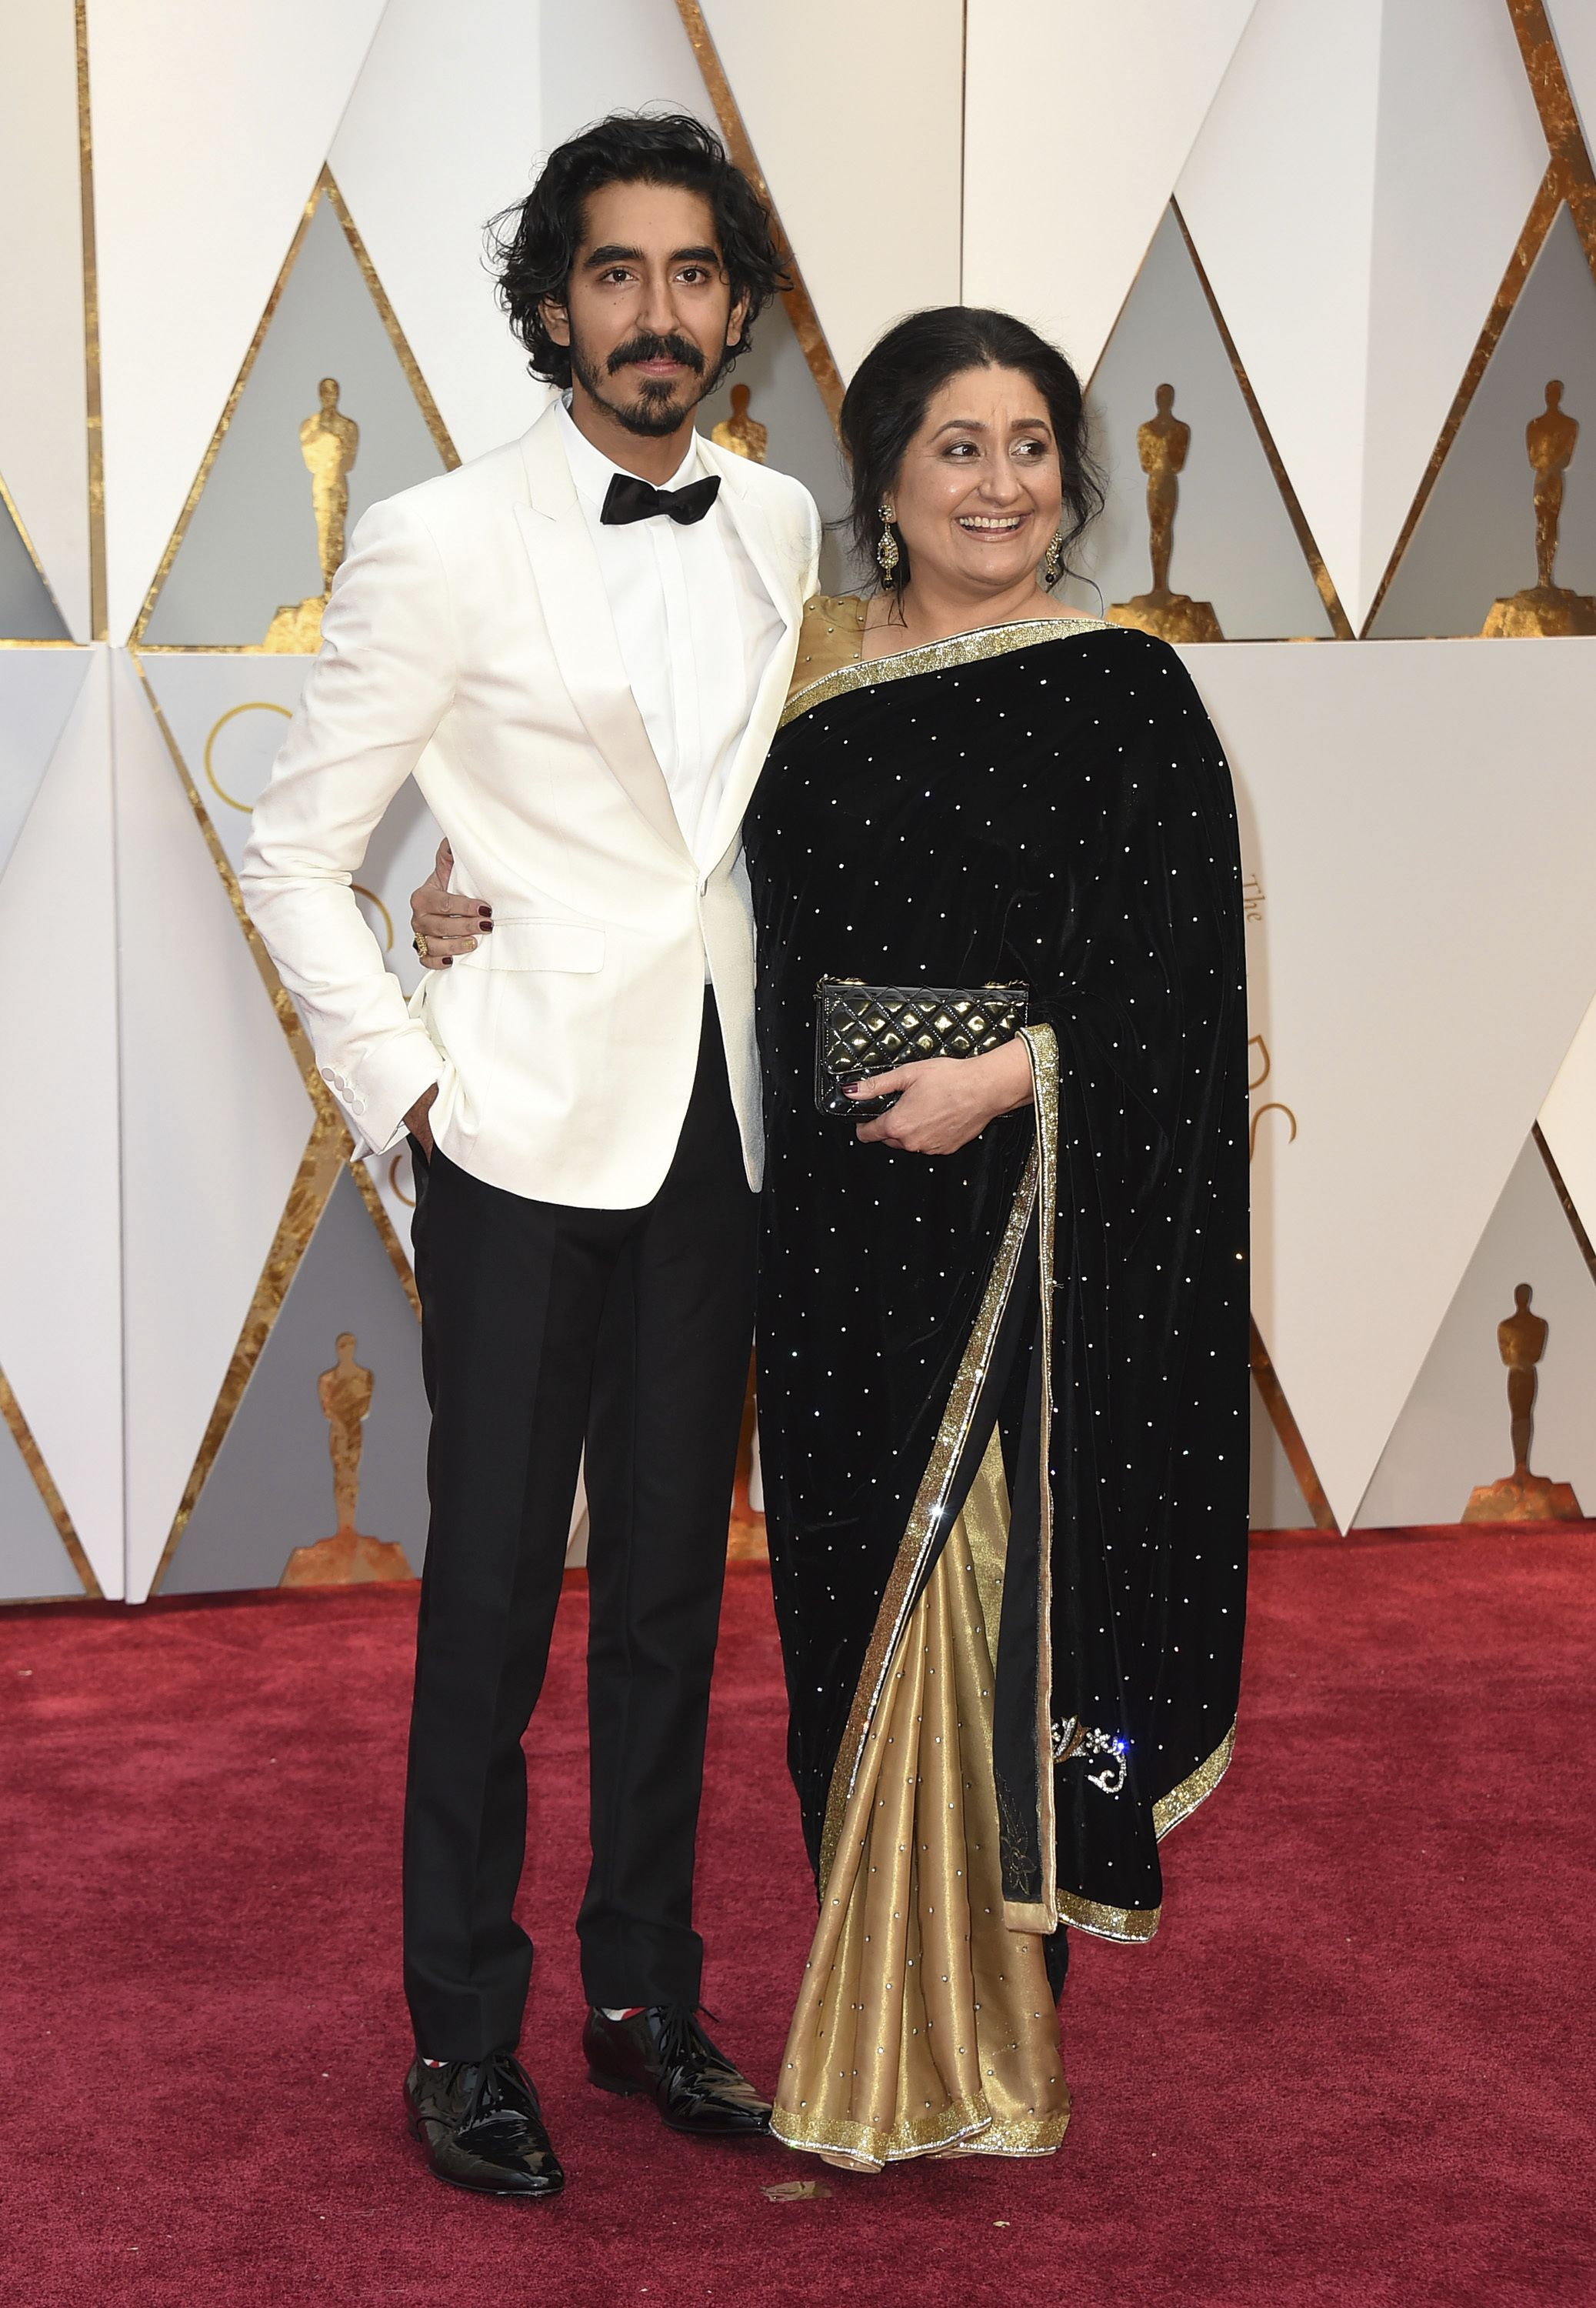 Dev Patel, left, and Anita Patel arrive at the Oscars on Sunday, Feb. 26, 2017, at the Dolby Theatre in Los Angeles. (Photo by Jordan Strauss/Invision/AP)